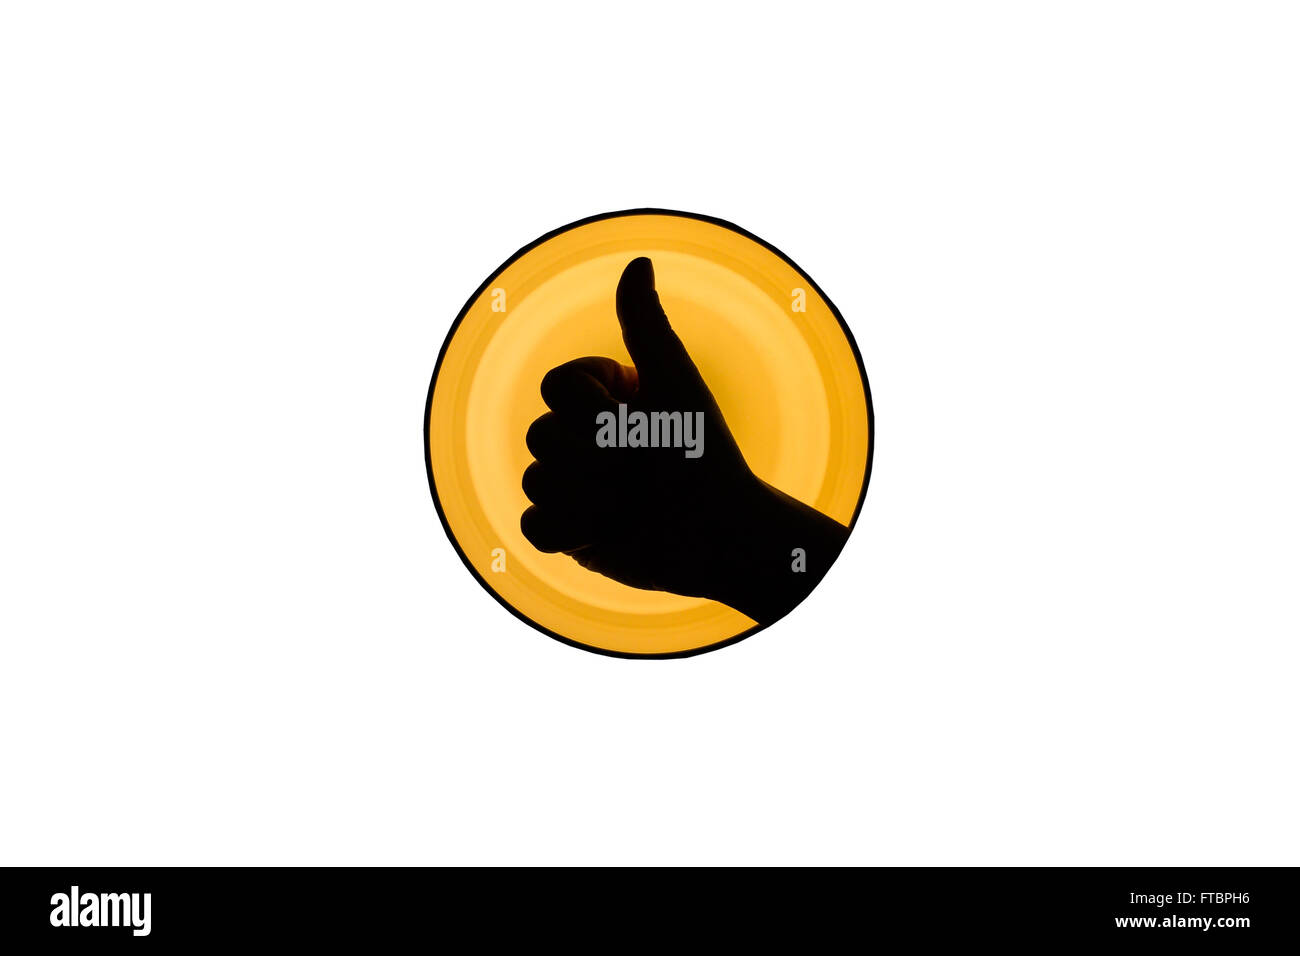 Hand making a Thumbs up sign - Stock Image